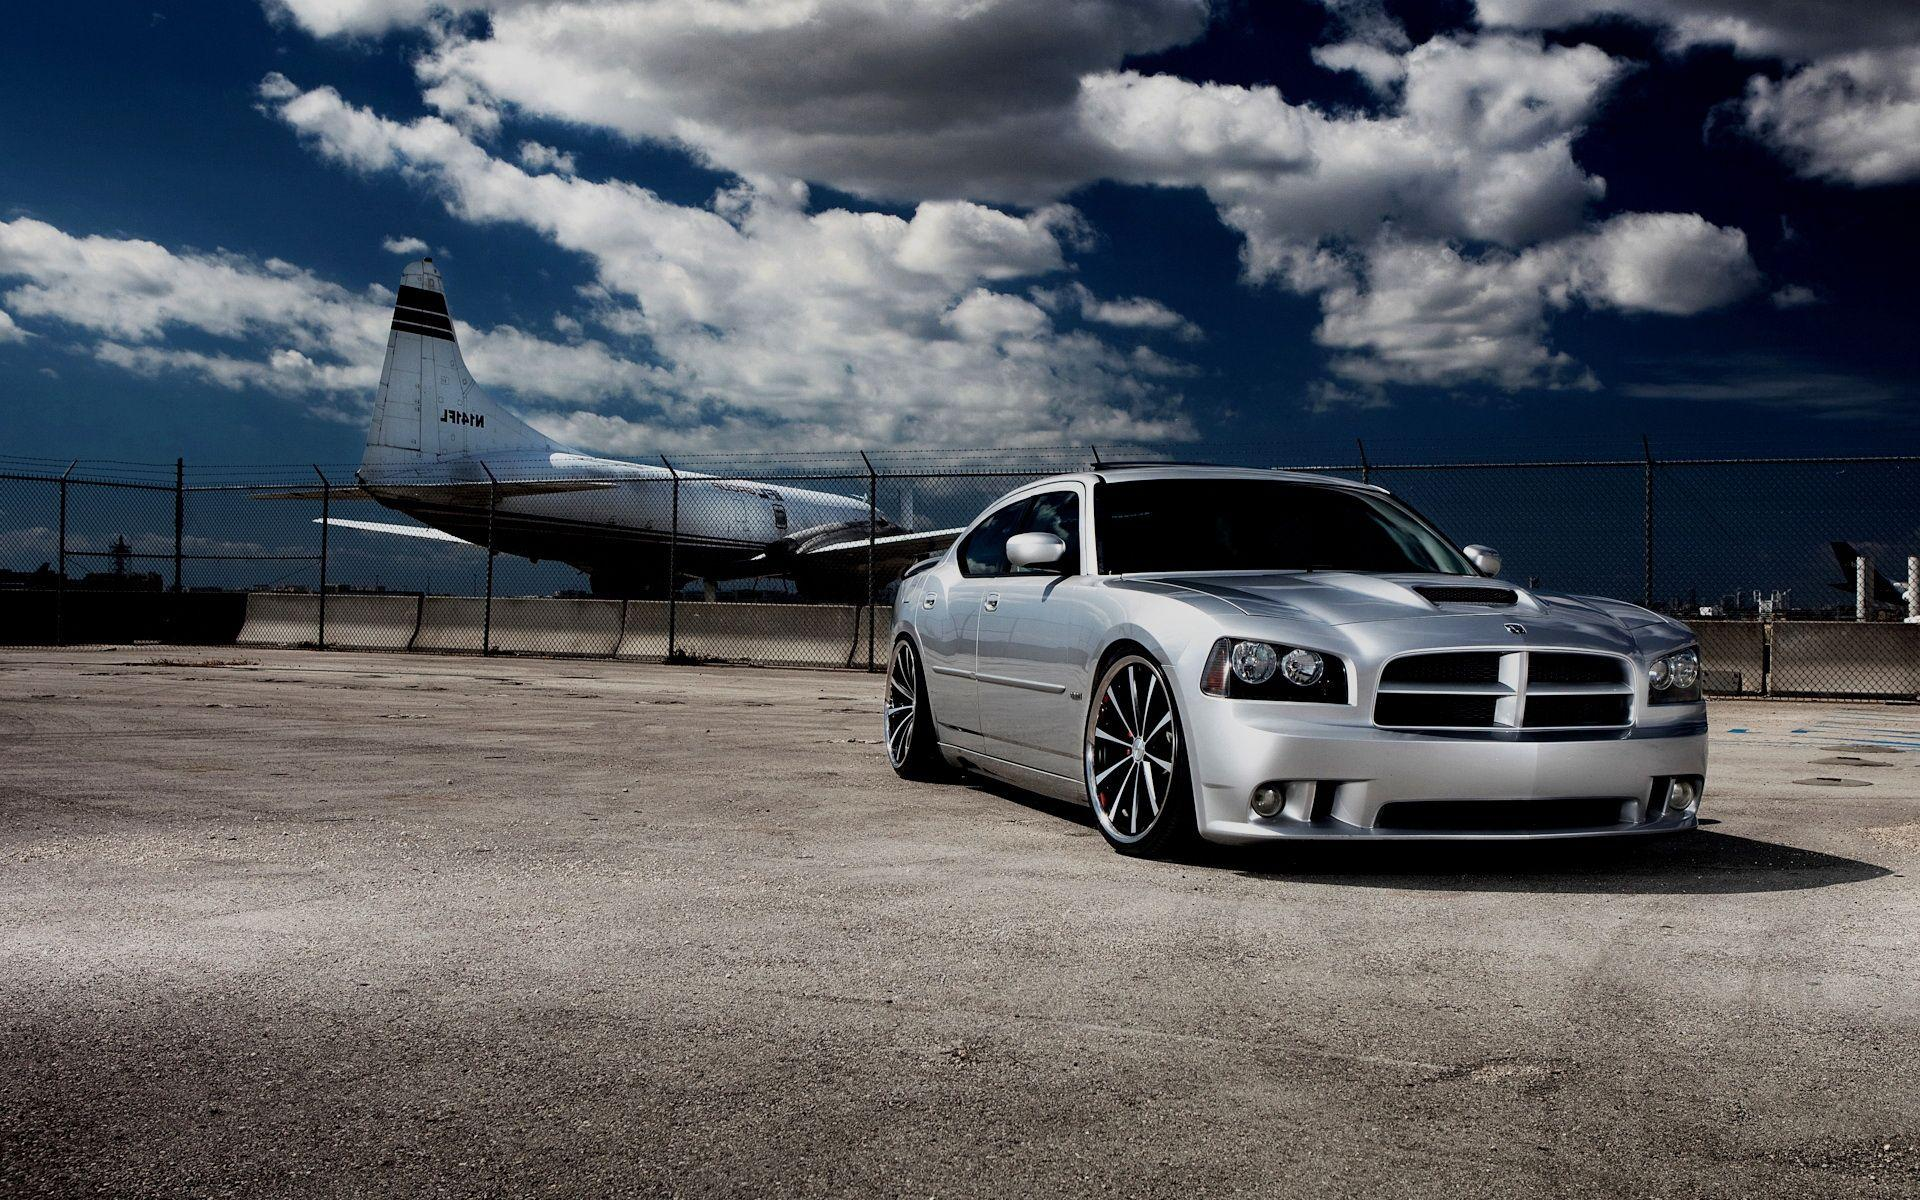 Dodge Charger Full HD Wallpapers and Backgrounds Image